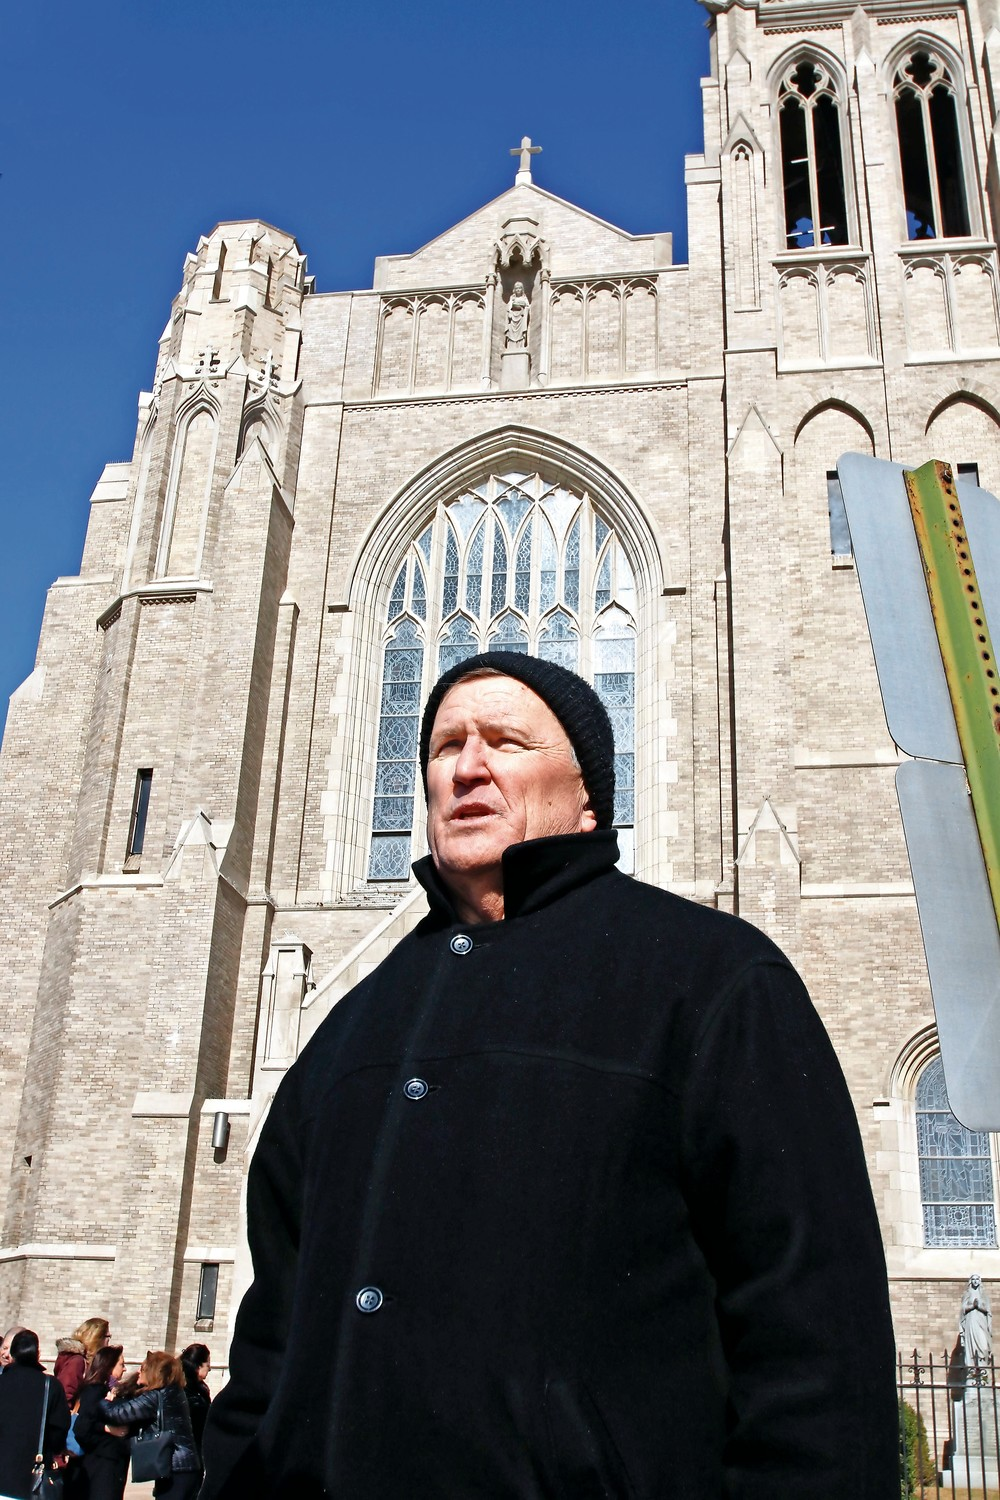 Diocese of Rockville Centre awards $500K to clergy sex abuse